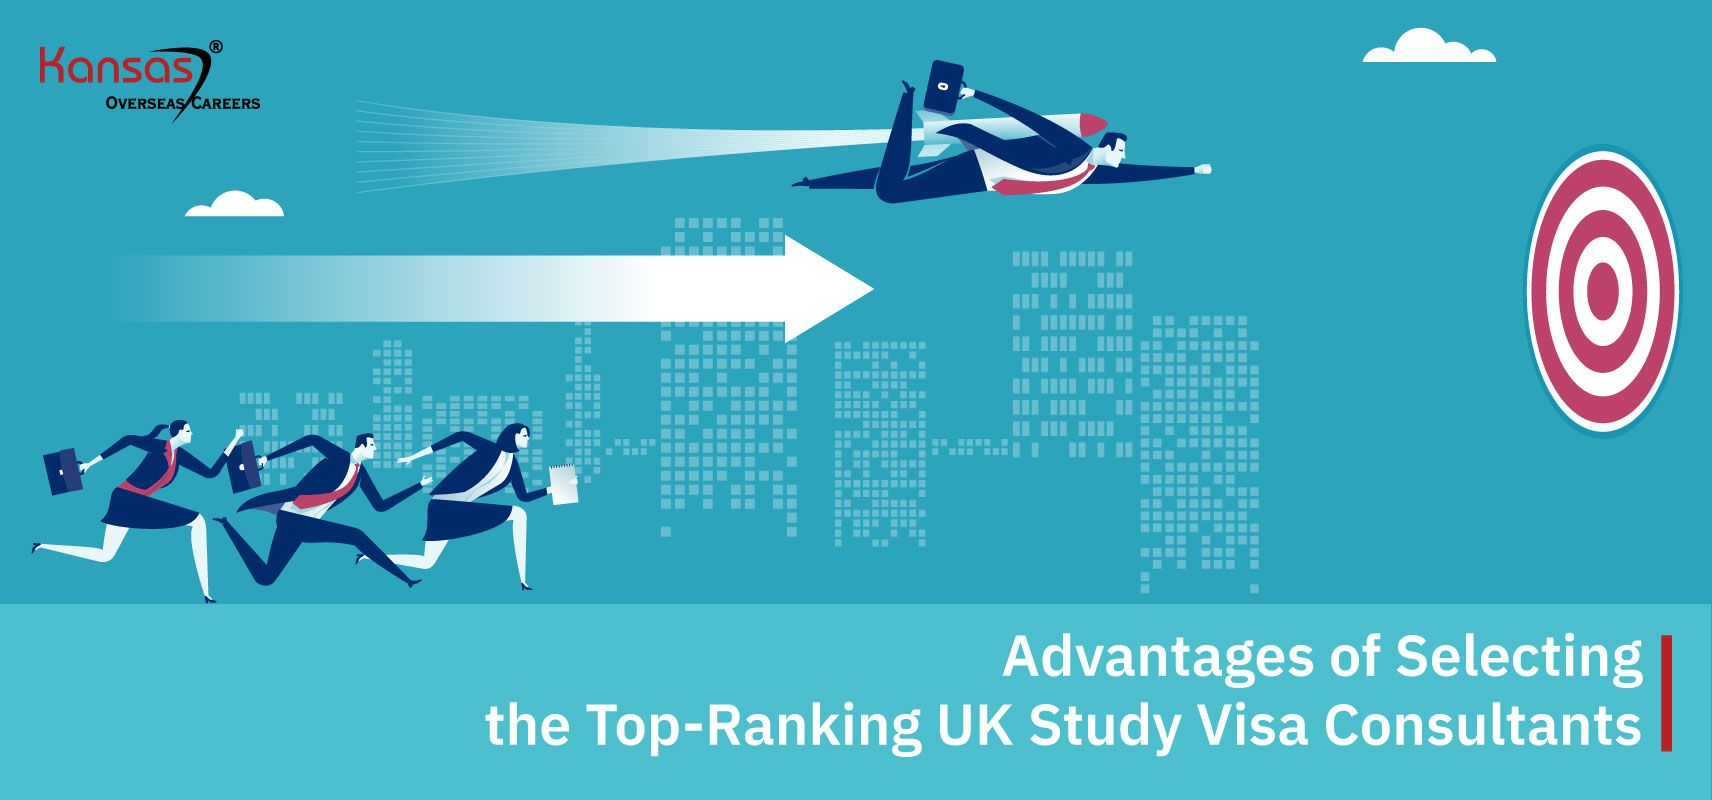 Advantages-of-Selecting-the-Top-Ranking-UK-Study-Visa-Consultants